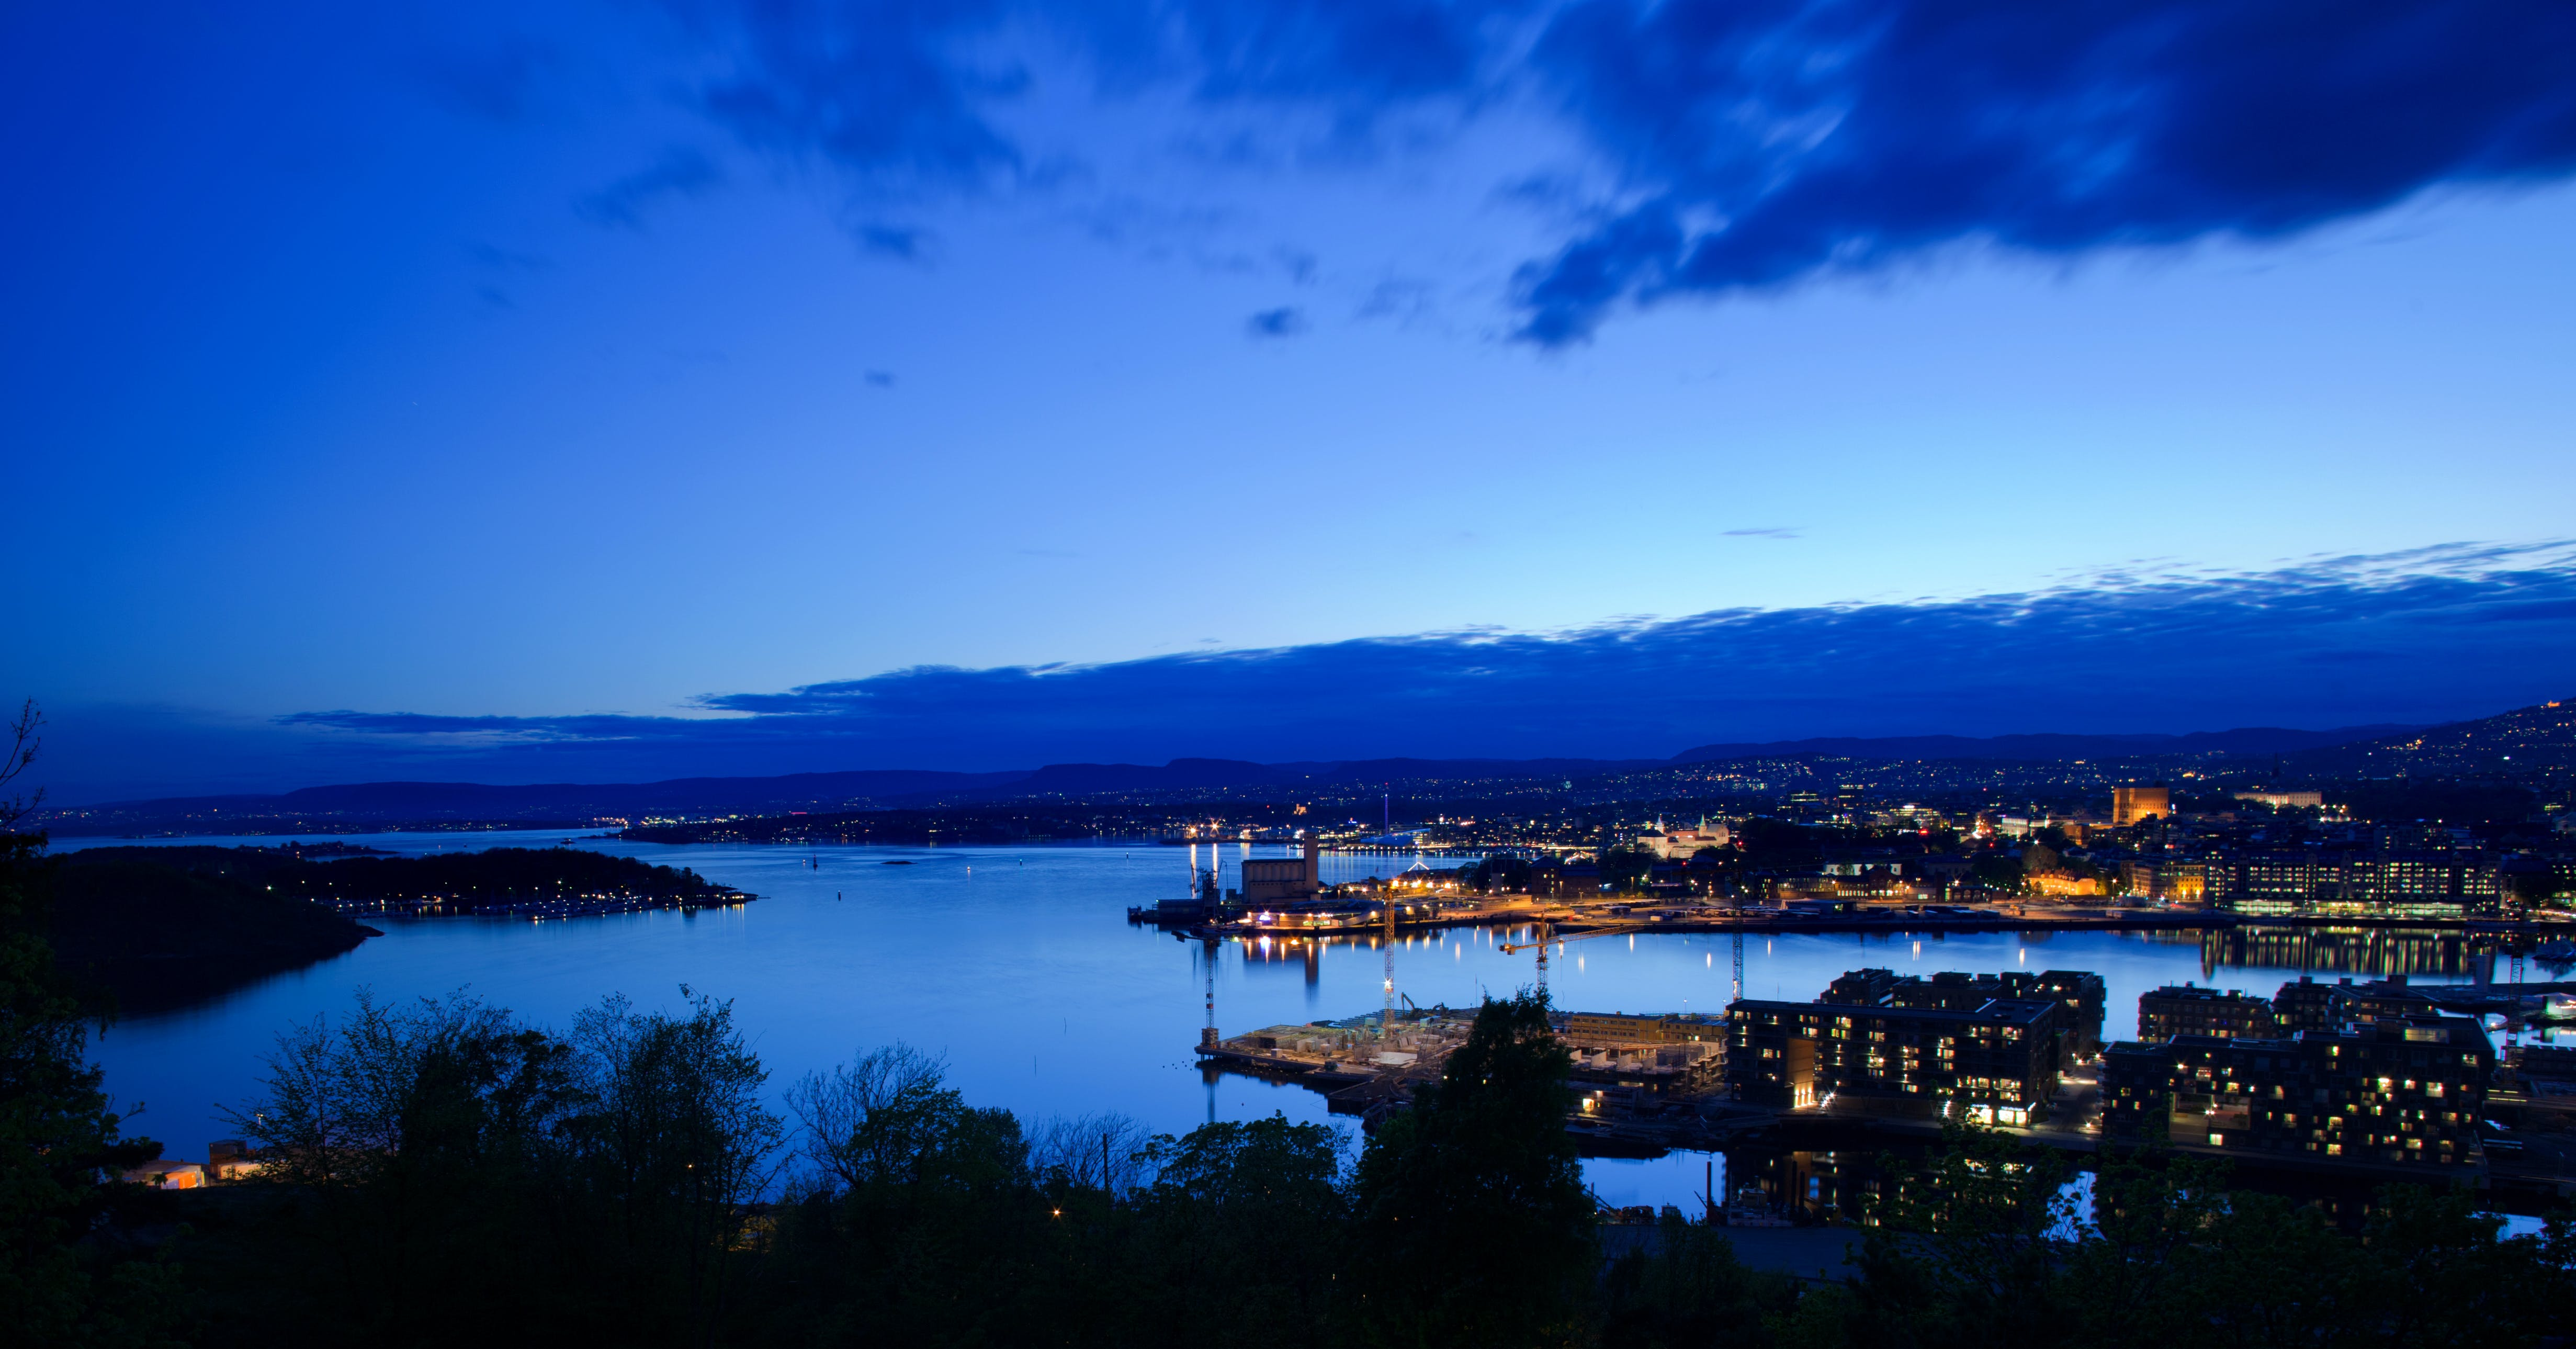 6 Things To Do & See in Oslo, The Capital City of Norway